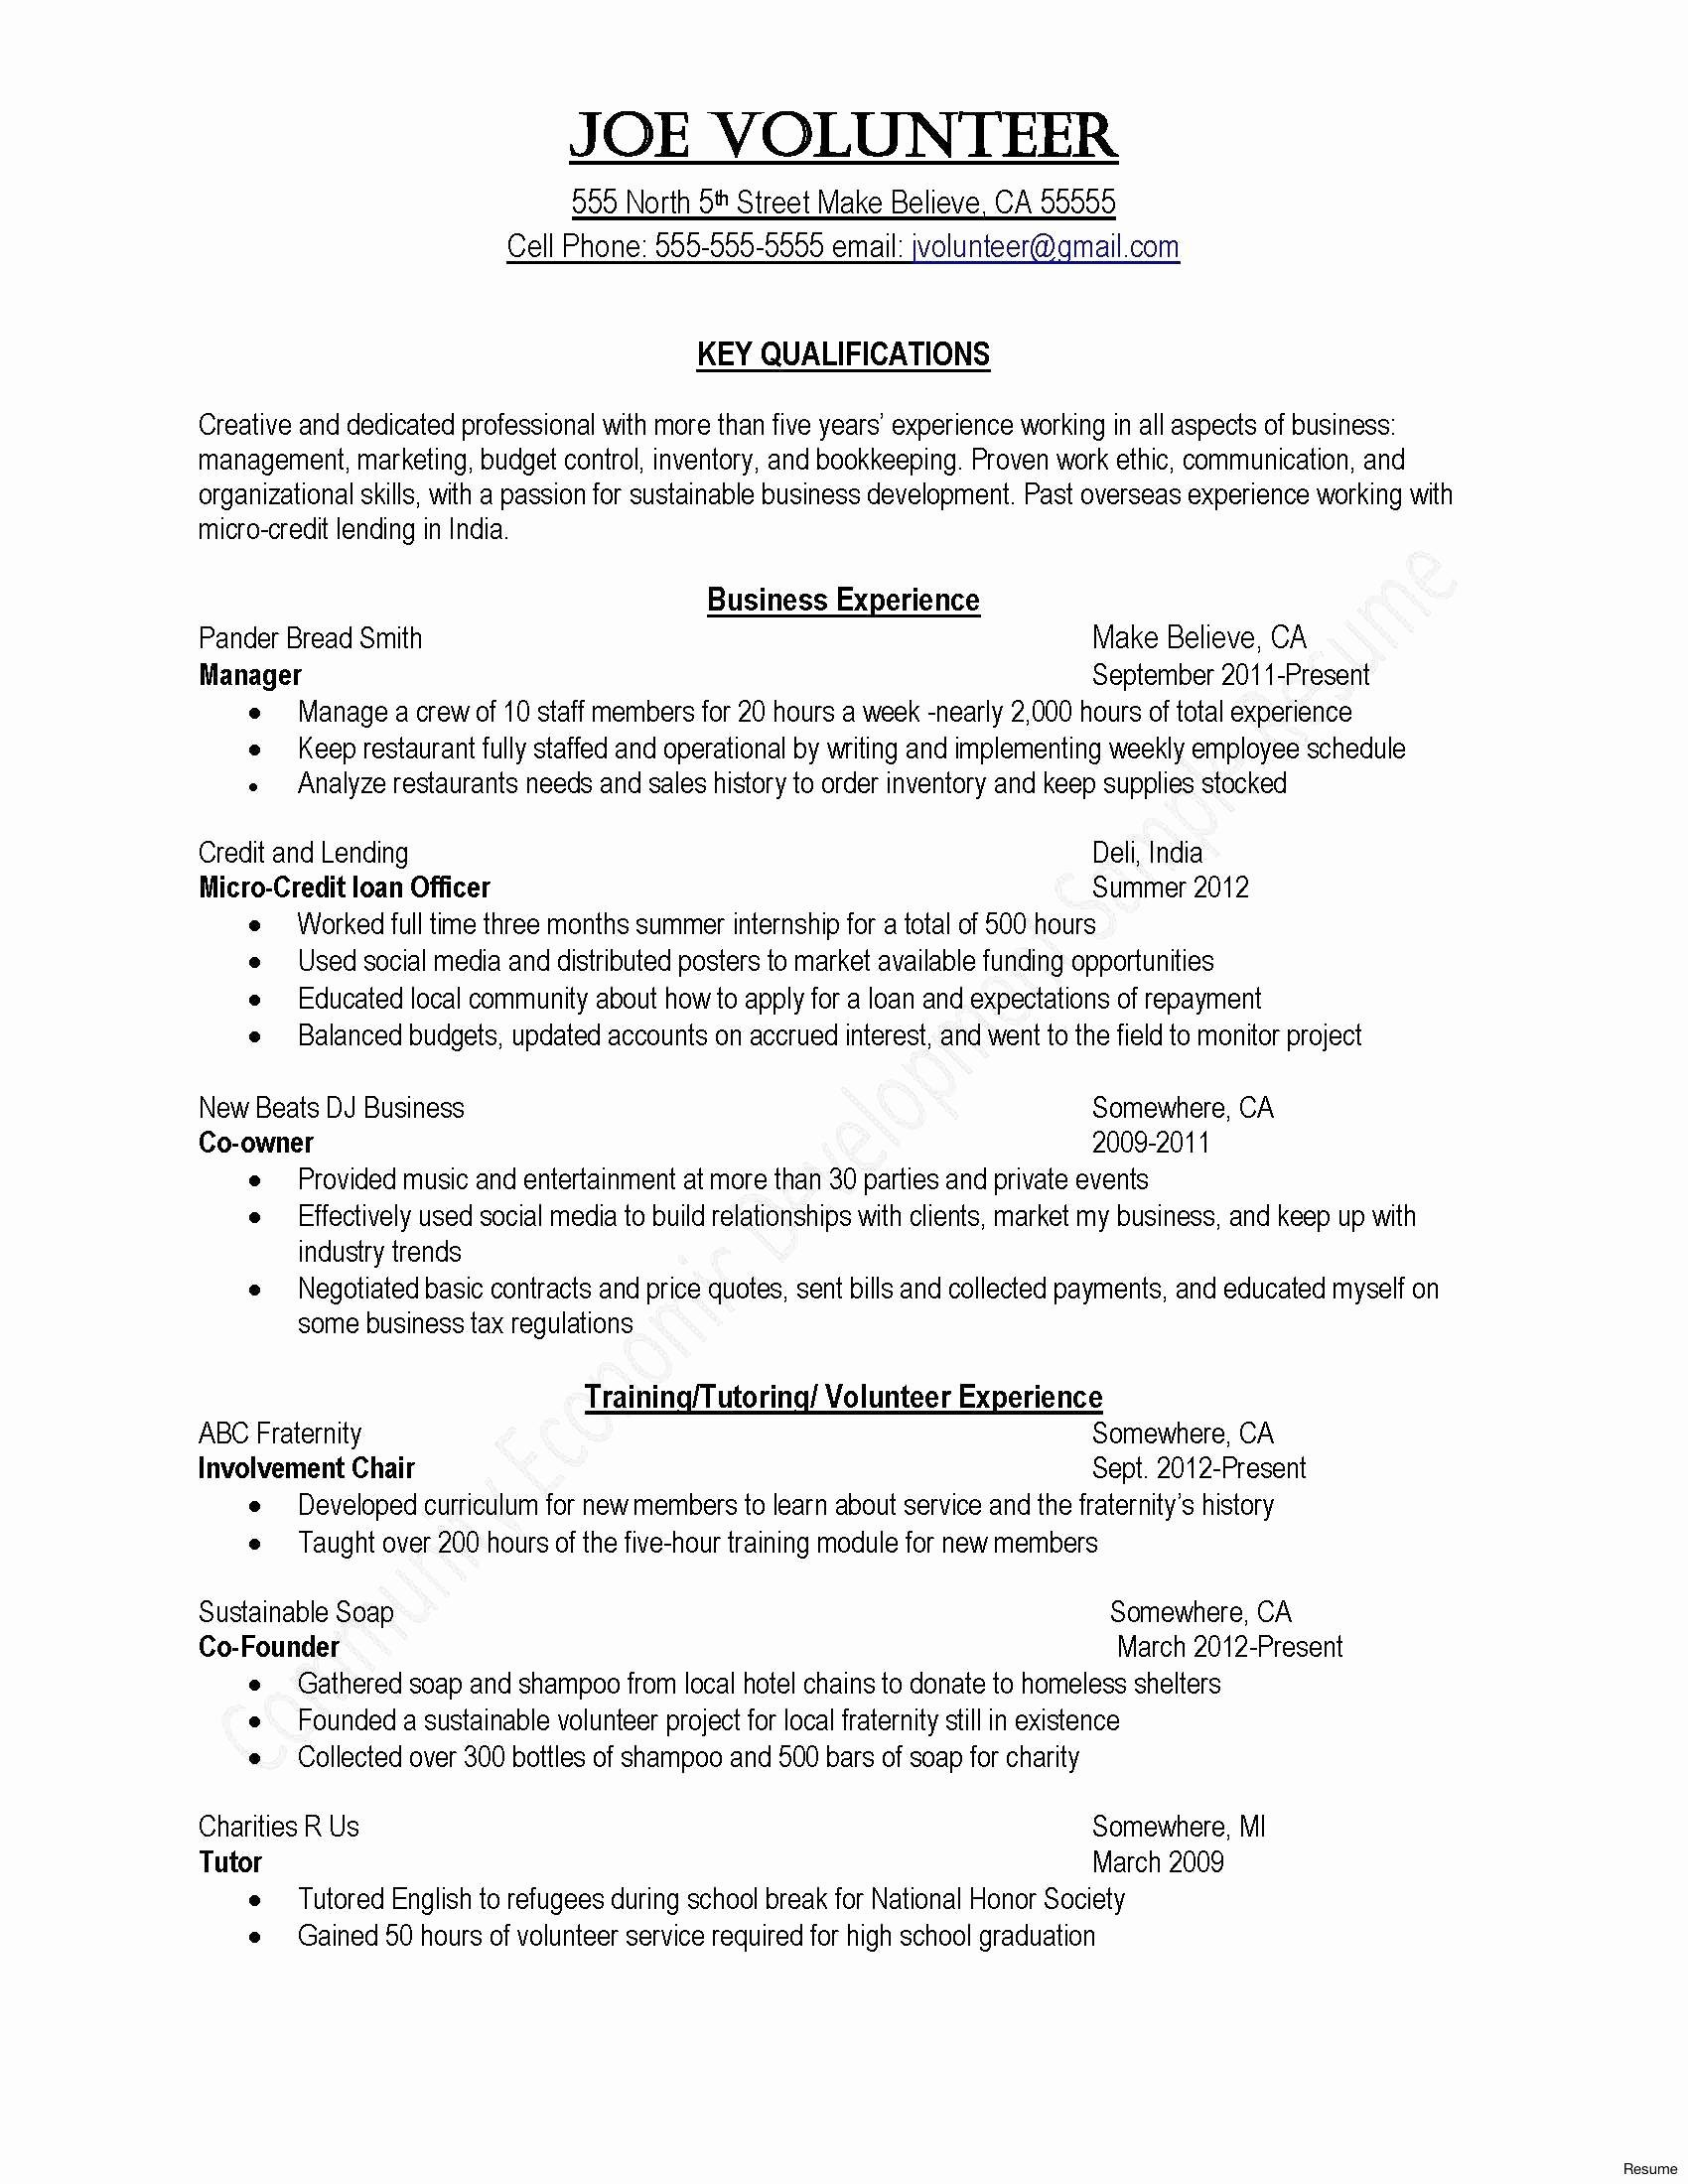 letter to troops template example-Performance Metric Template Beautiful Graphic Resume Templates New Resume Puter Skills Examples Fresh Od 19-e